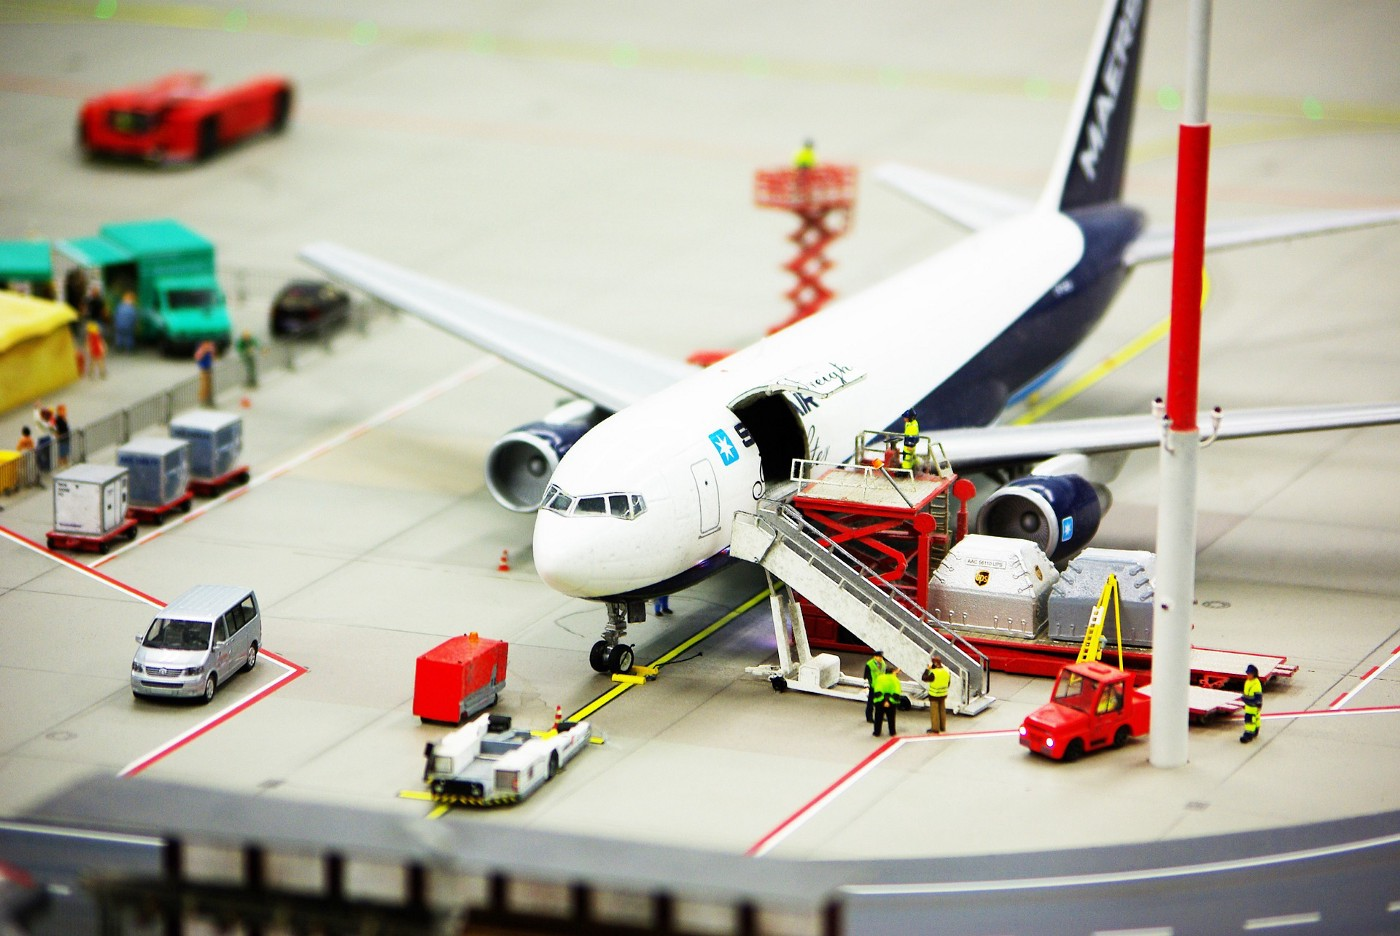 eco-friendly flying with a miniature-sized plane and airport scene